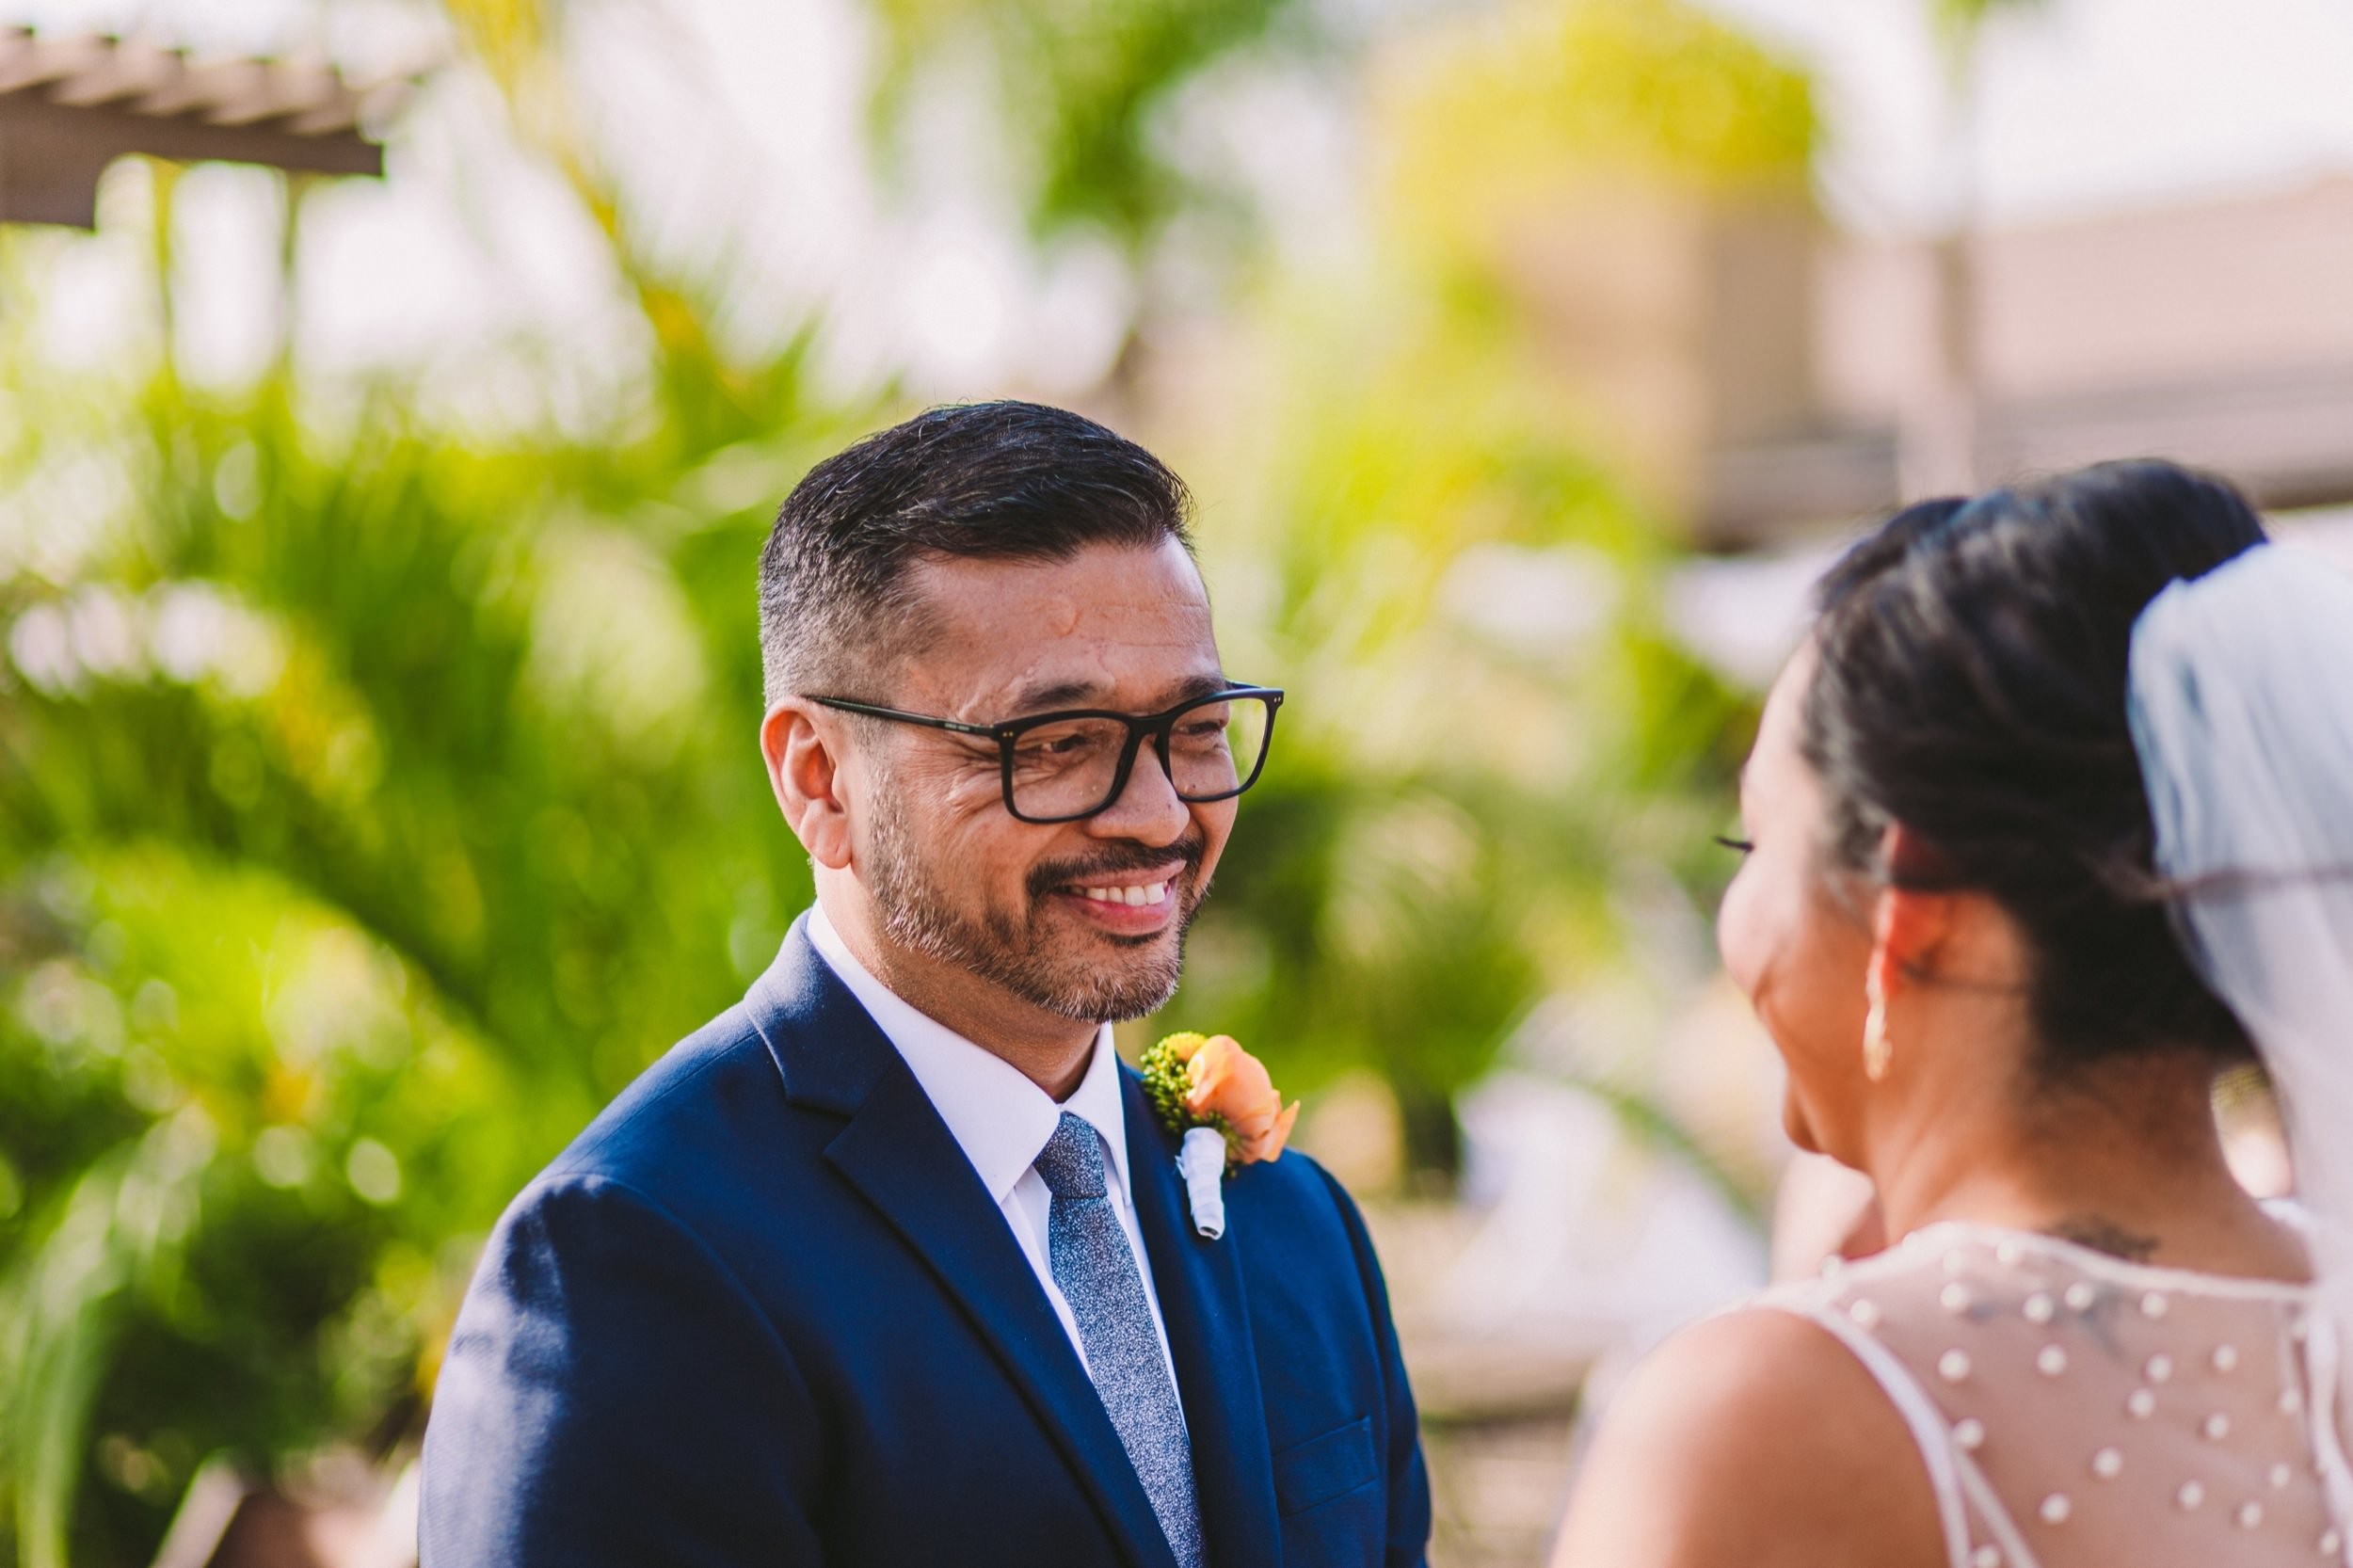 Happy Groom During Wedding Ceremony - Documentary Wedding Photography in Temecula